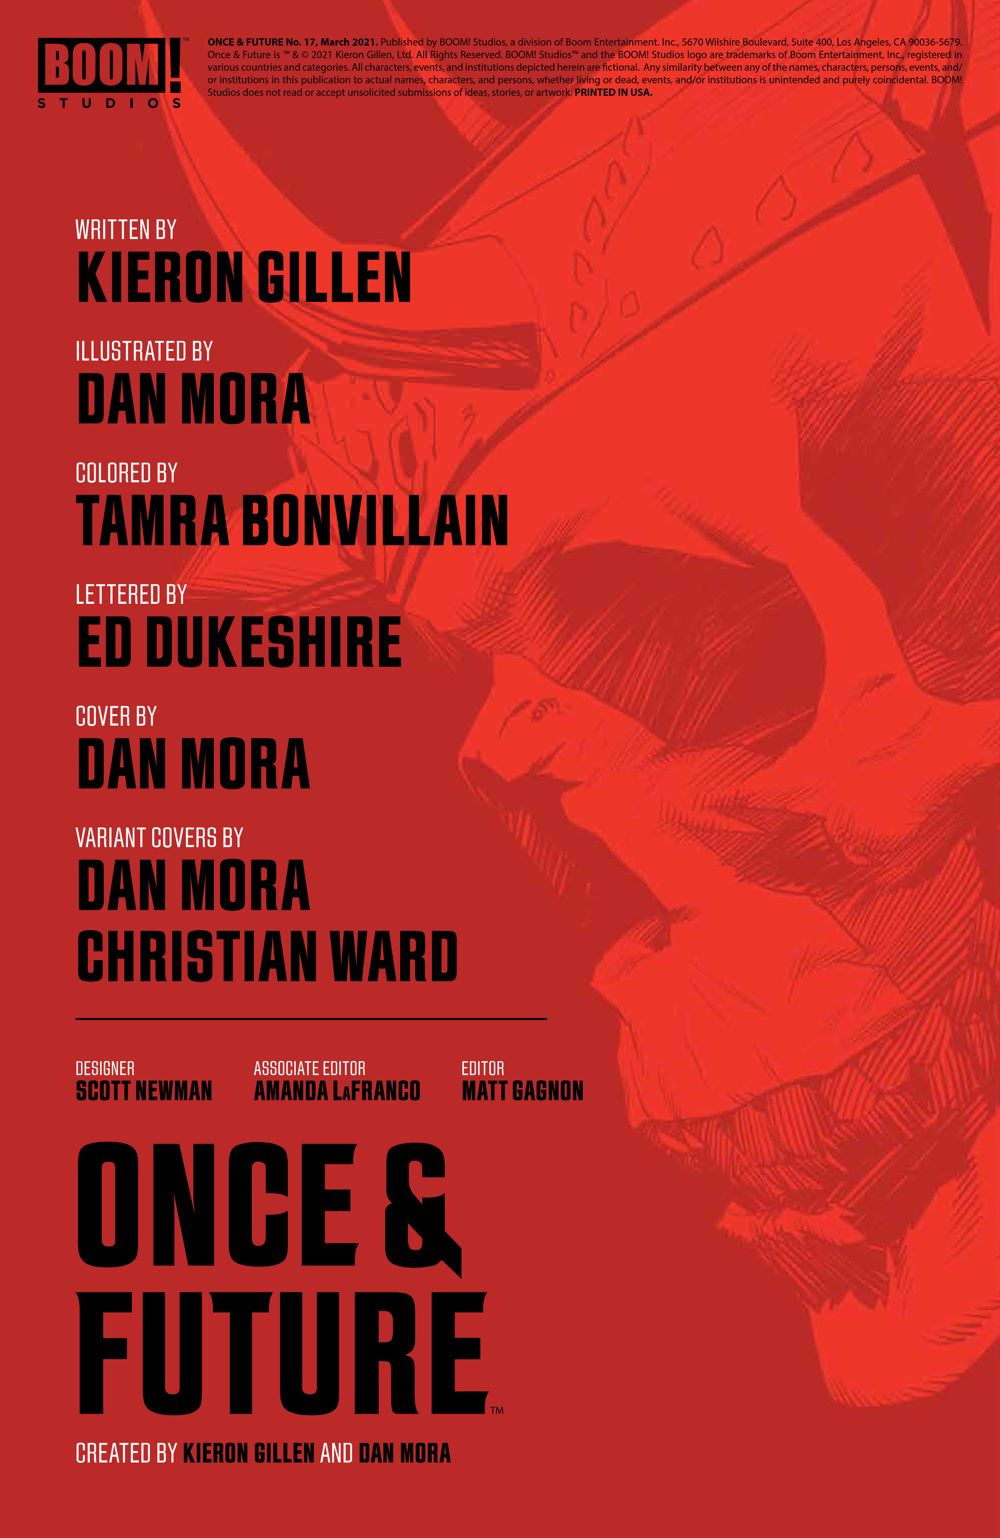 OnceFuture_017_PRESS_2 ComicList Previews: ONCE AND FUTURE #17